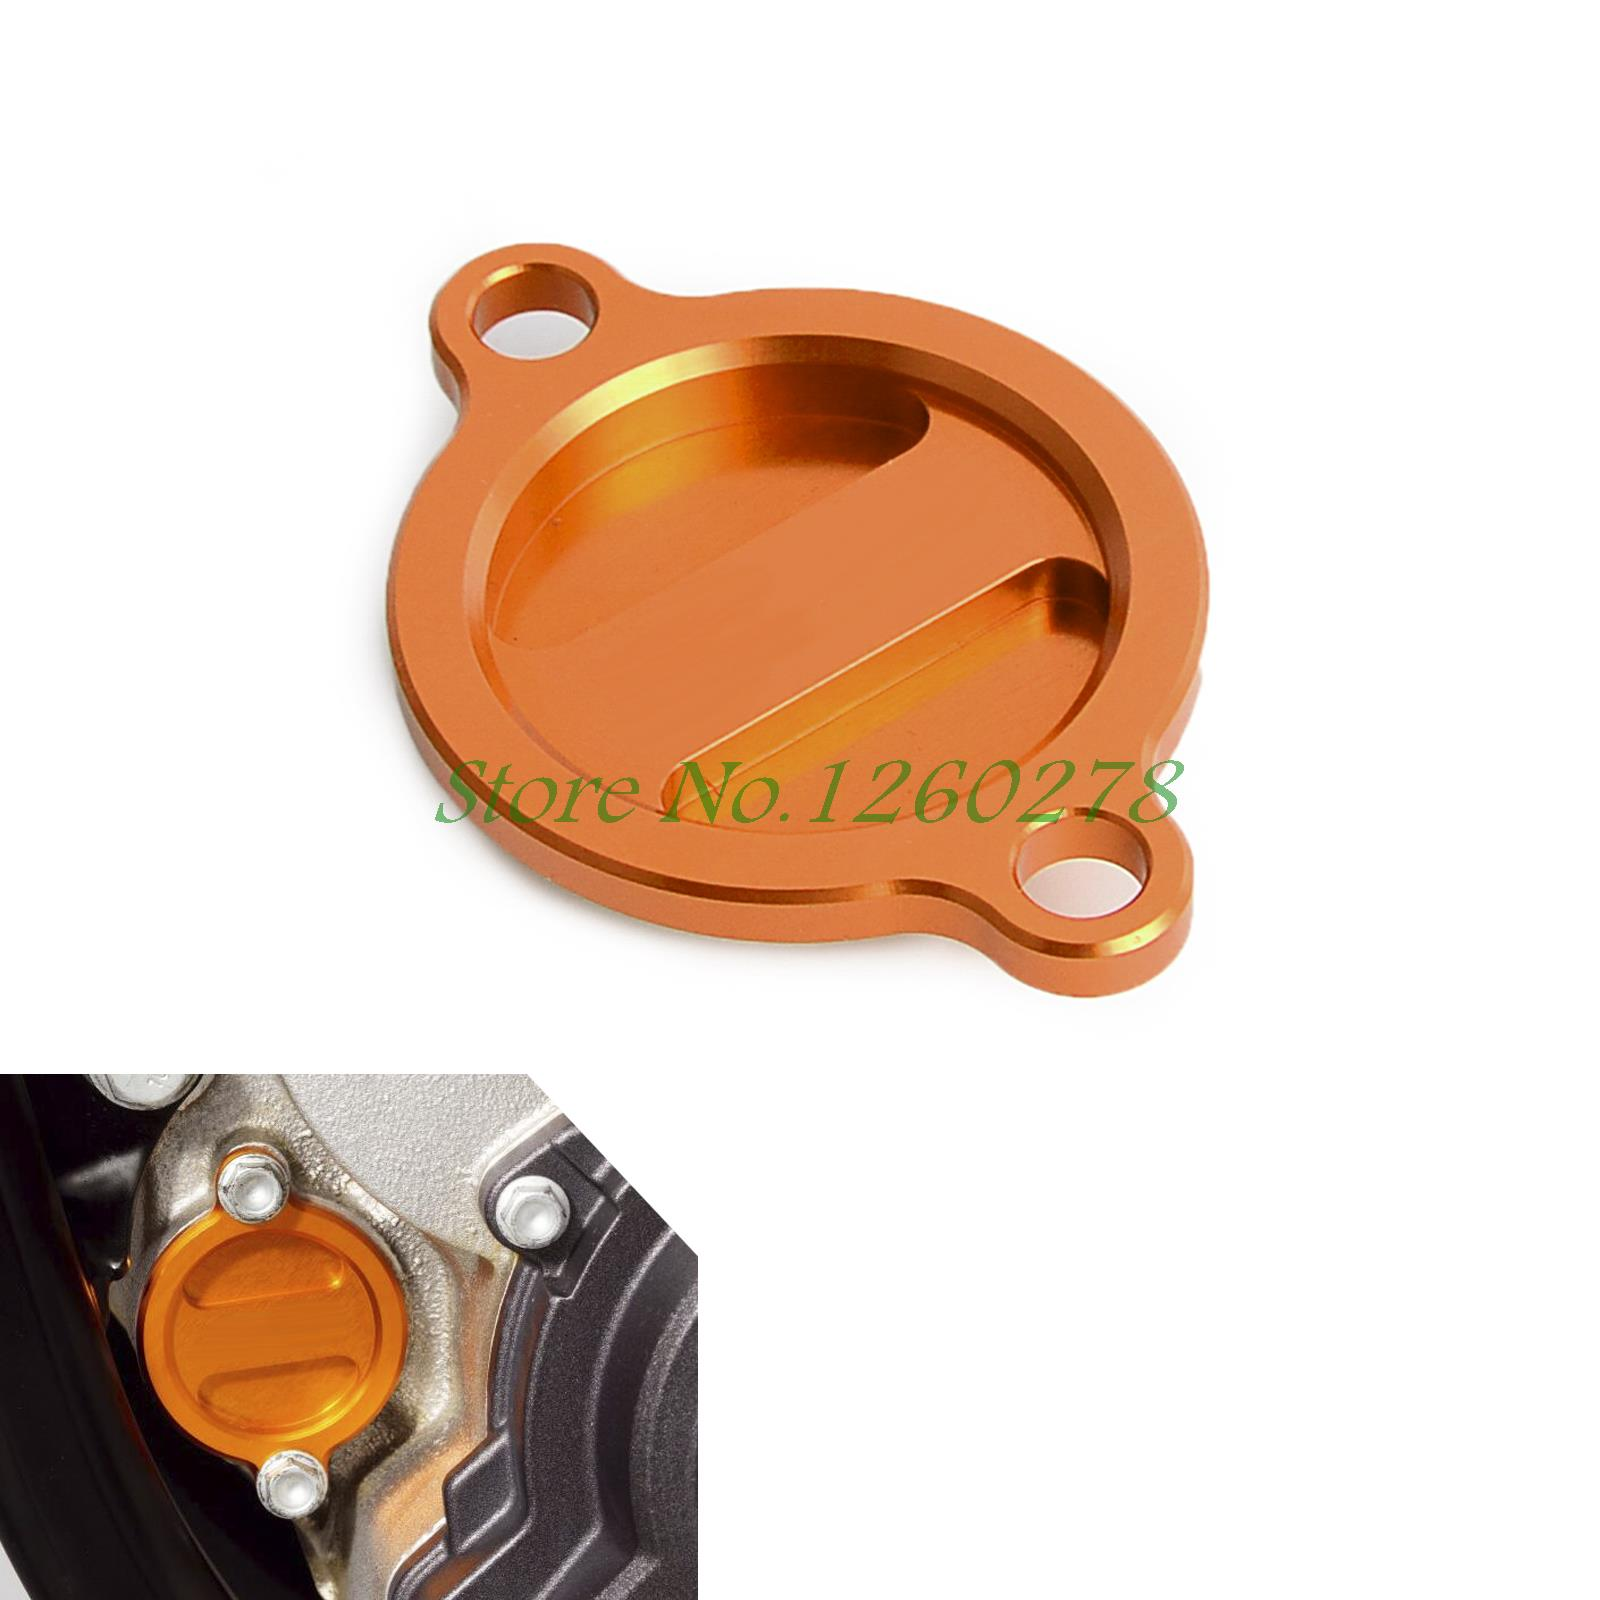 NICECNC Motorcycle Oil Filter Cover Cap Fits For KTM 250 350 450 505 530 Freeride 350 SXF EXCF SIX DAYS EXC SXSF SMR SIX DAYS